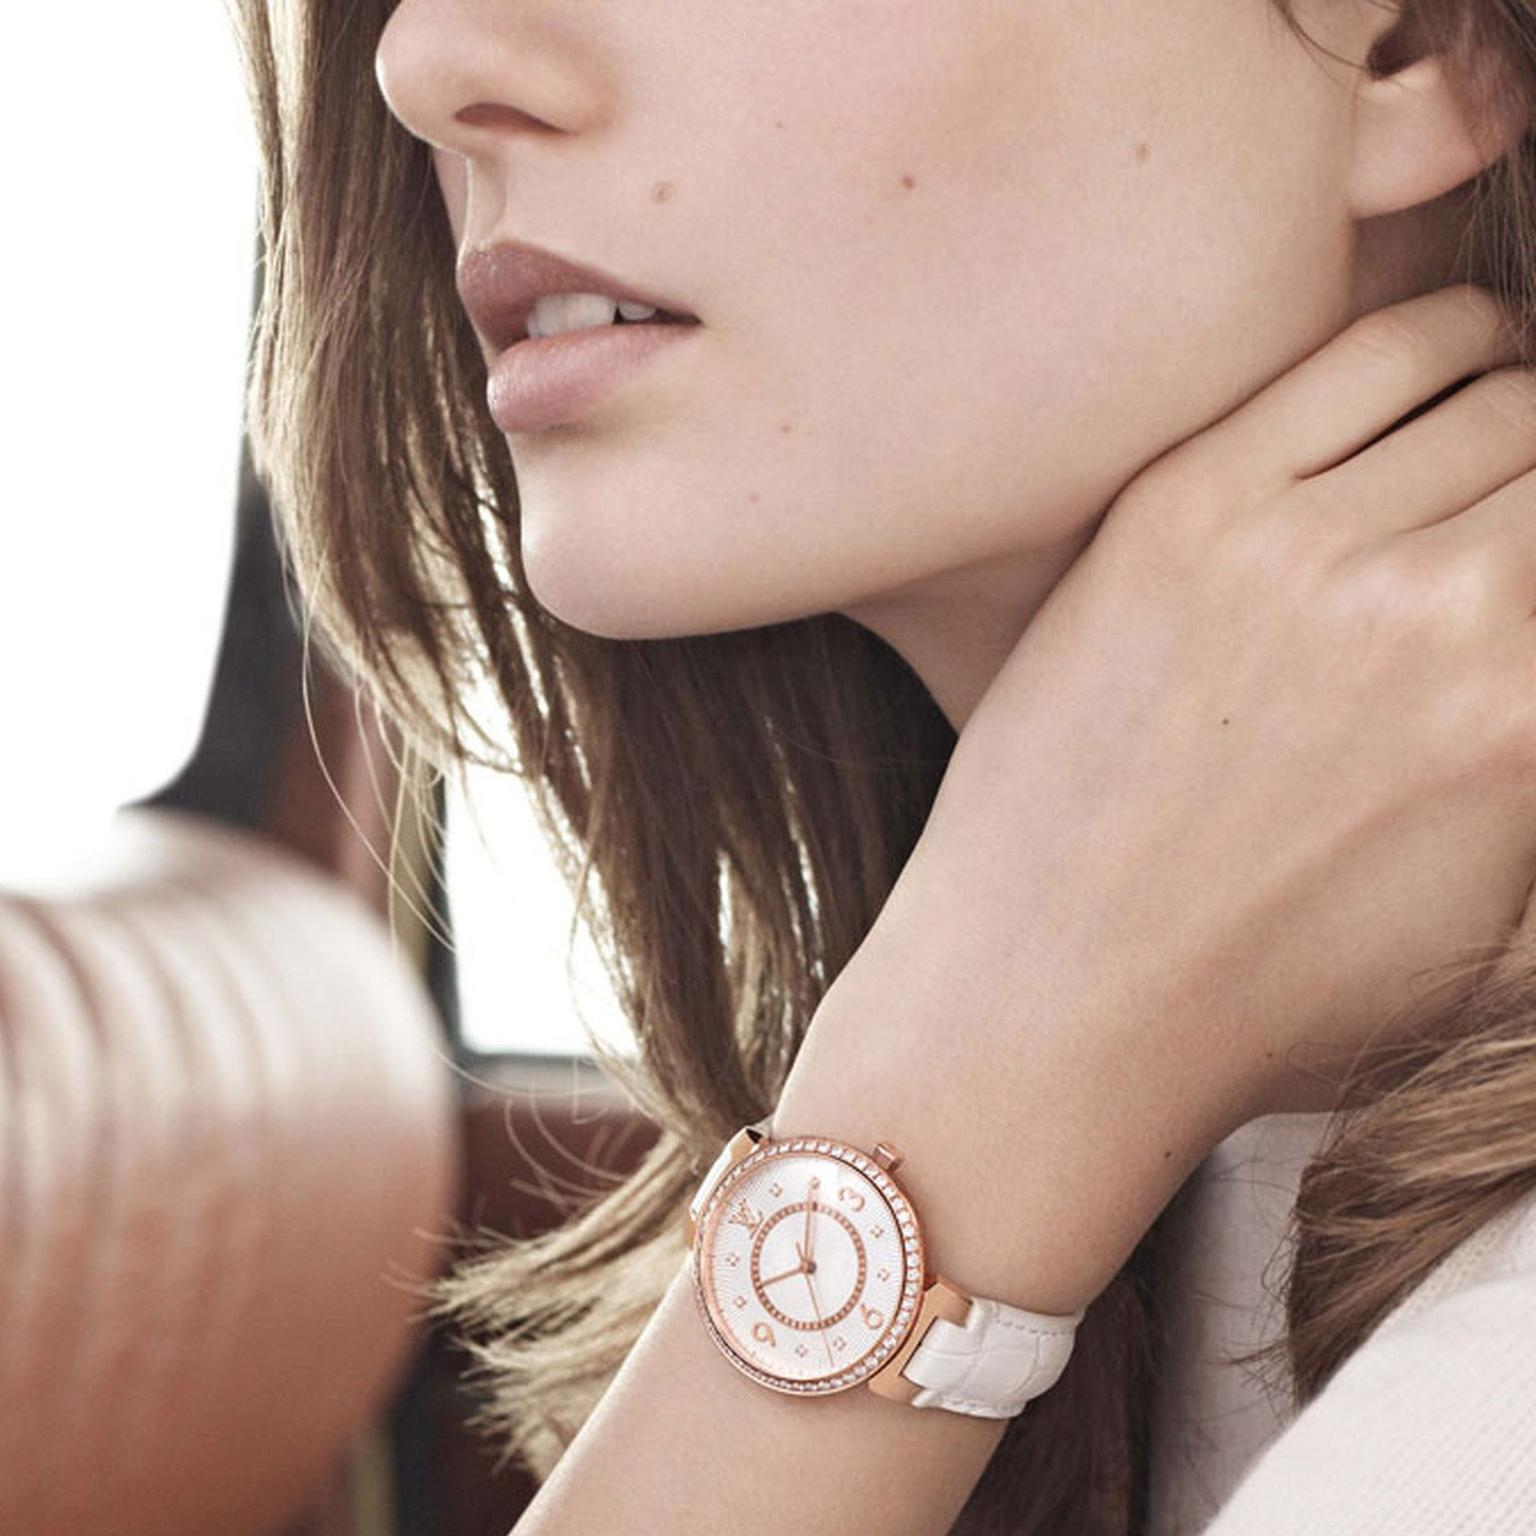 Louis Vuitton Tambour Monogram watch in rose gold with diamonds. © LOUIS VUITTON. Auteur: KARIM SADLI.